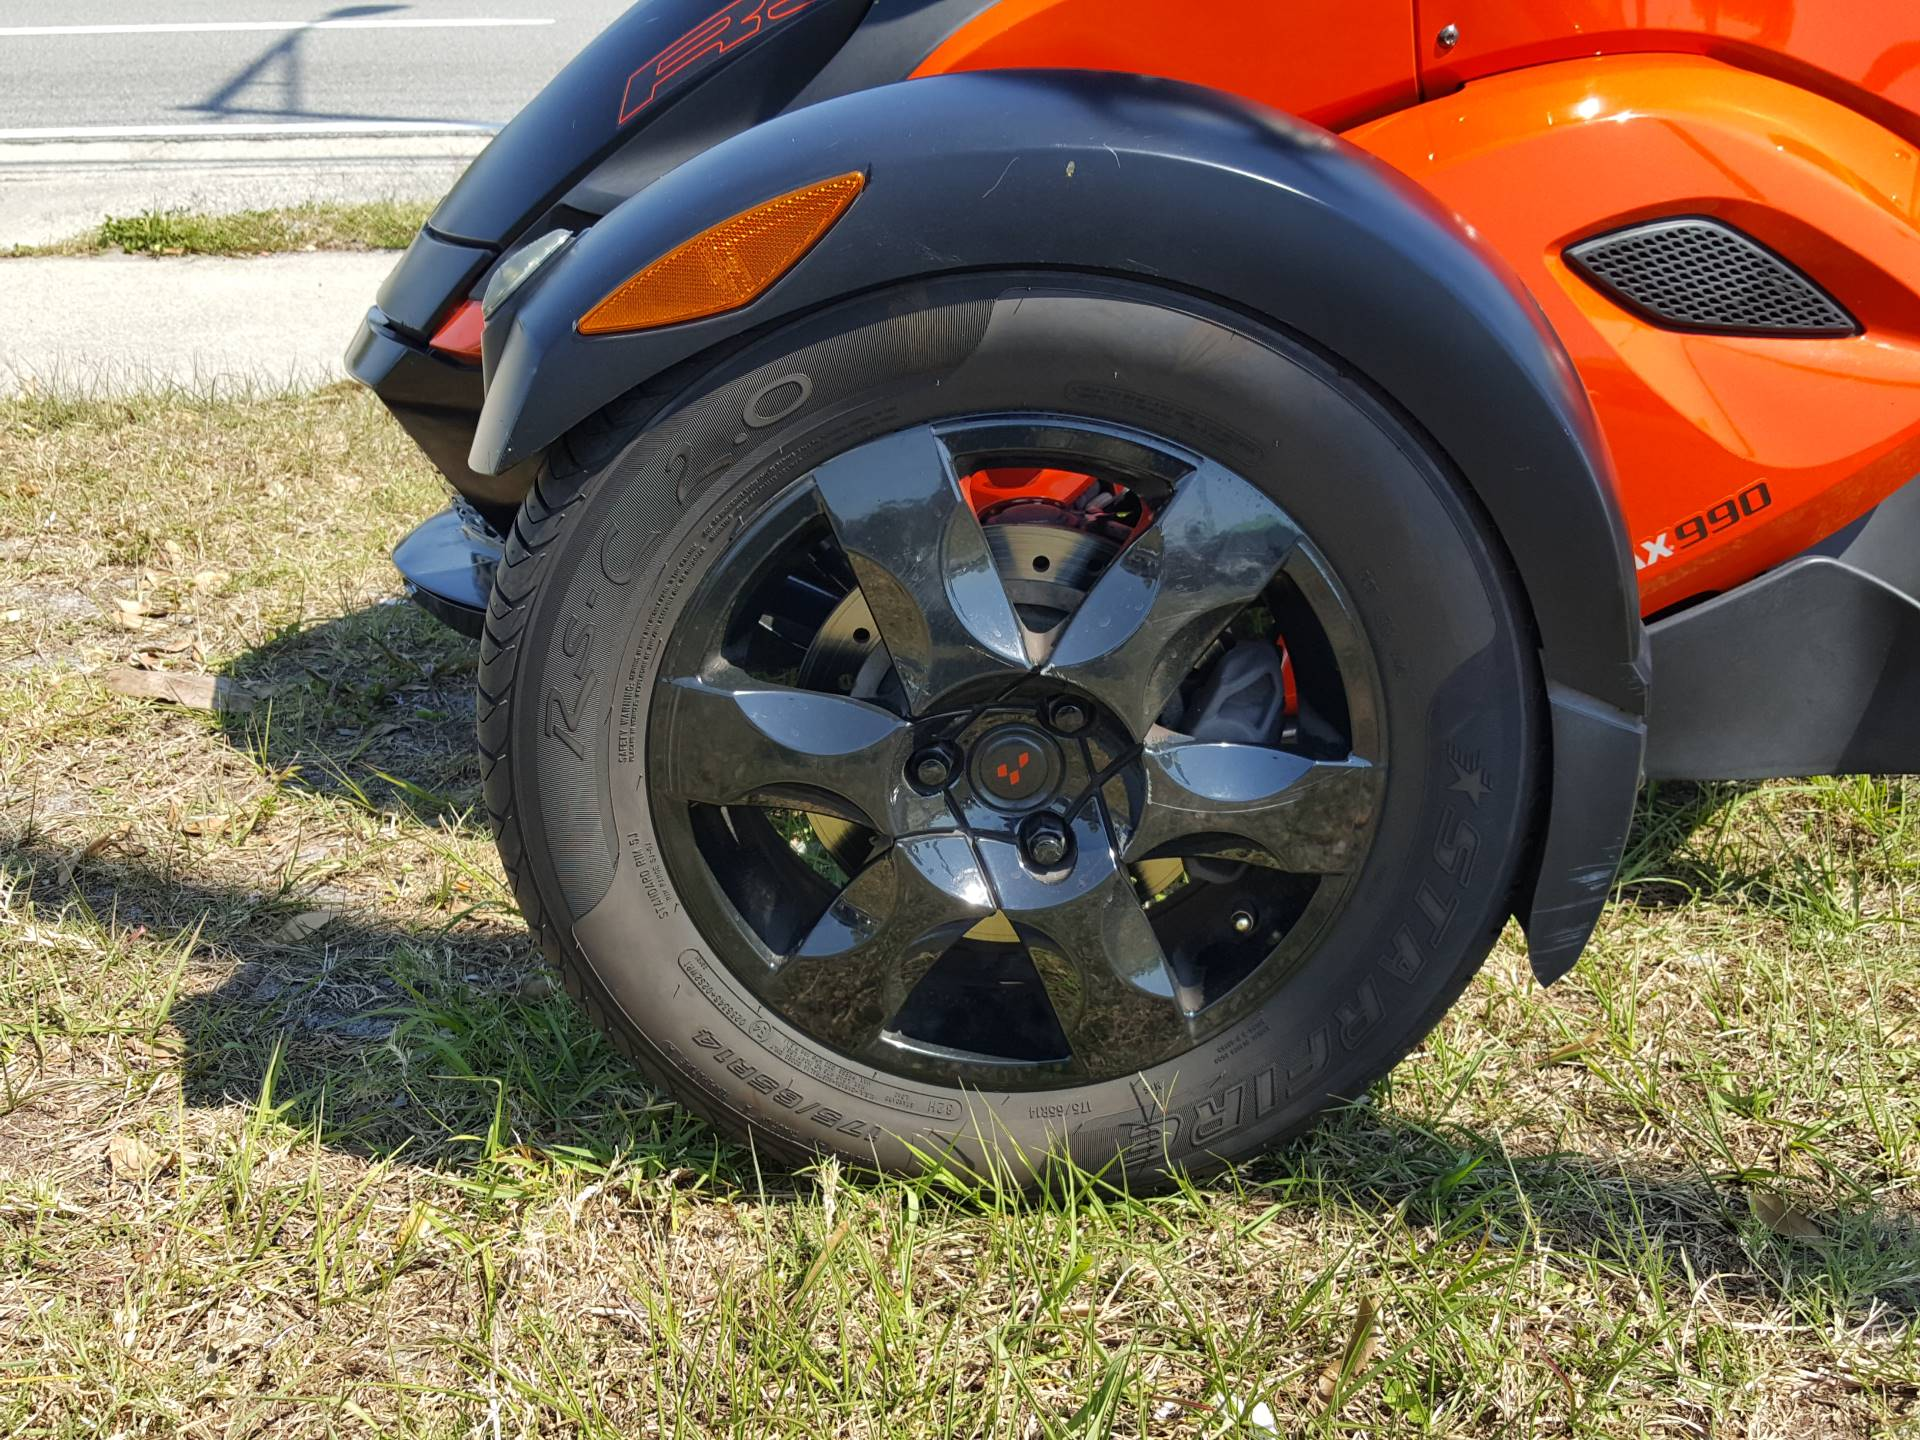 2009 Can-Am Spyder™ GS Roadster with SM5 Transmission (manual) in Melbourne, Florida